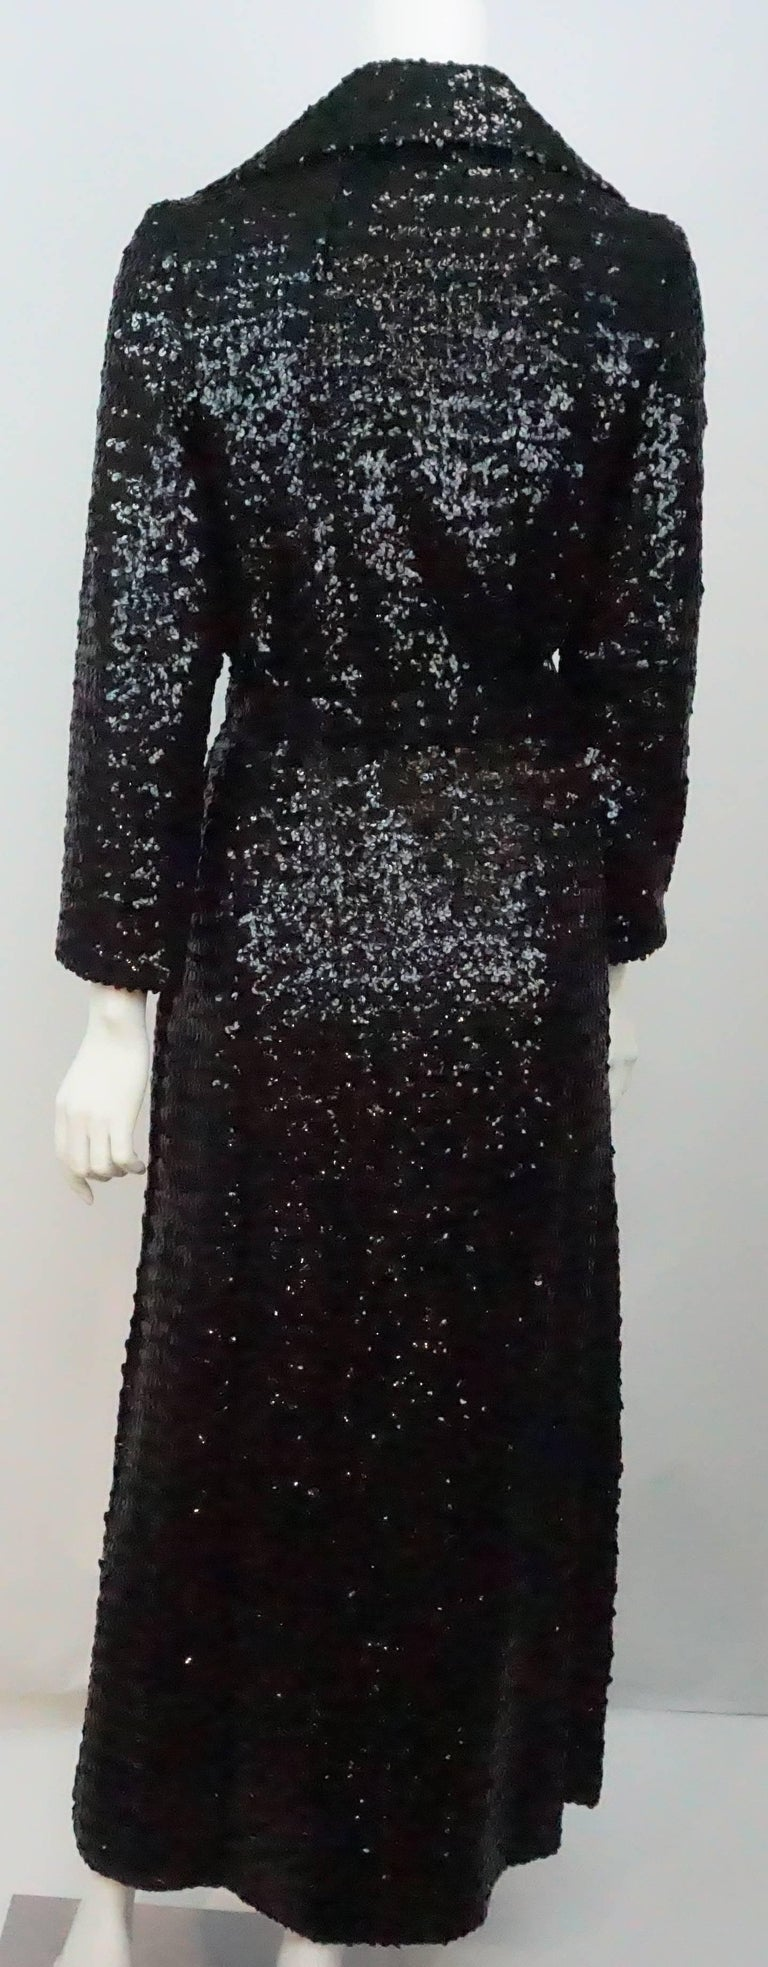 Women's Vintage Black Sequin Full Length Trench Coat - M - Circa 70's For Sale